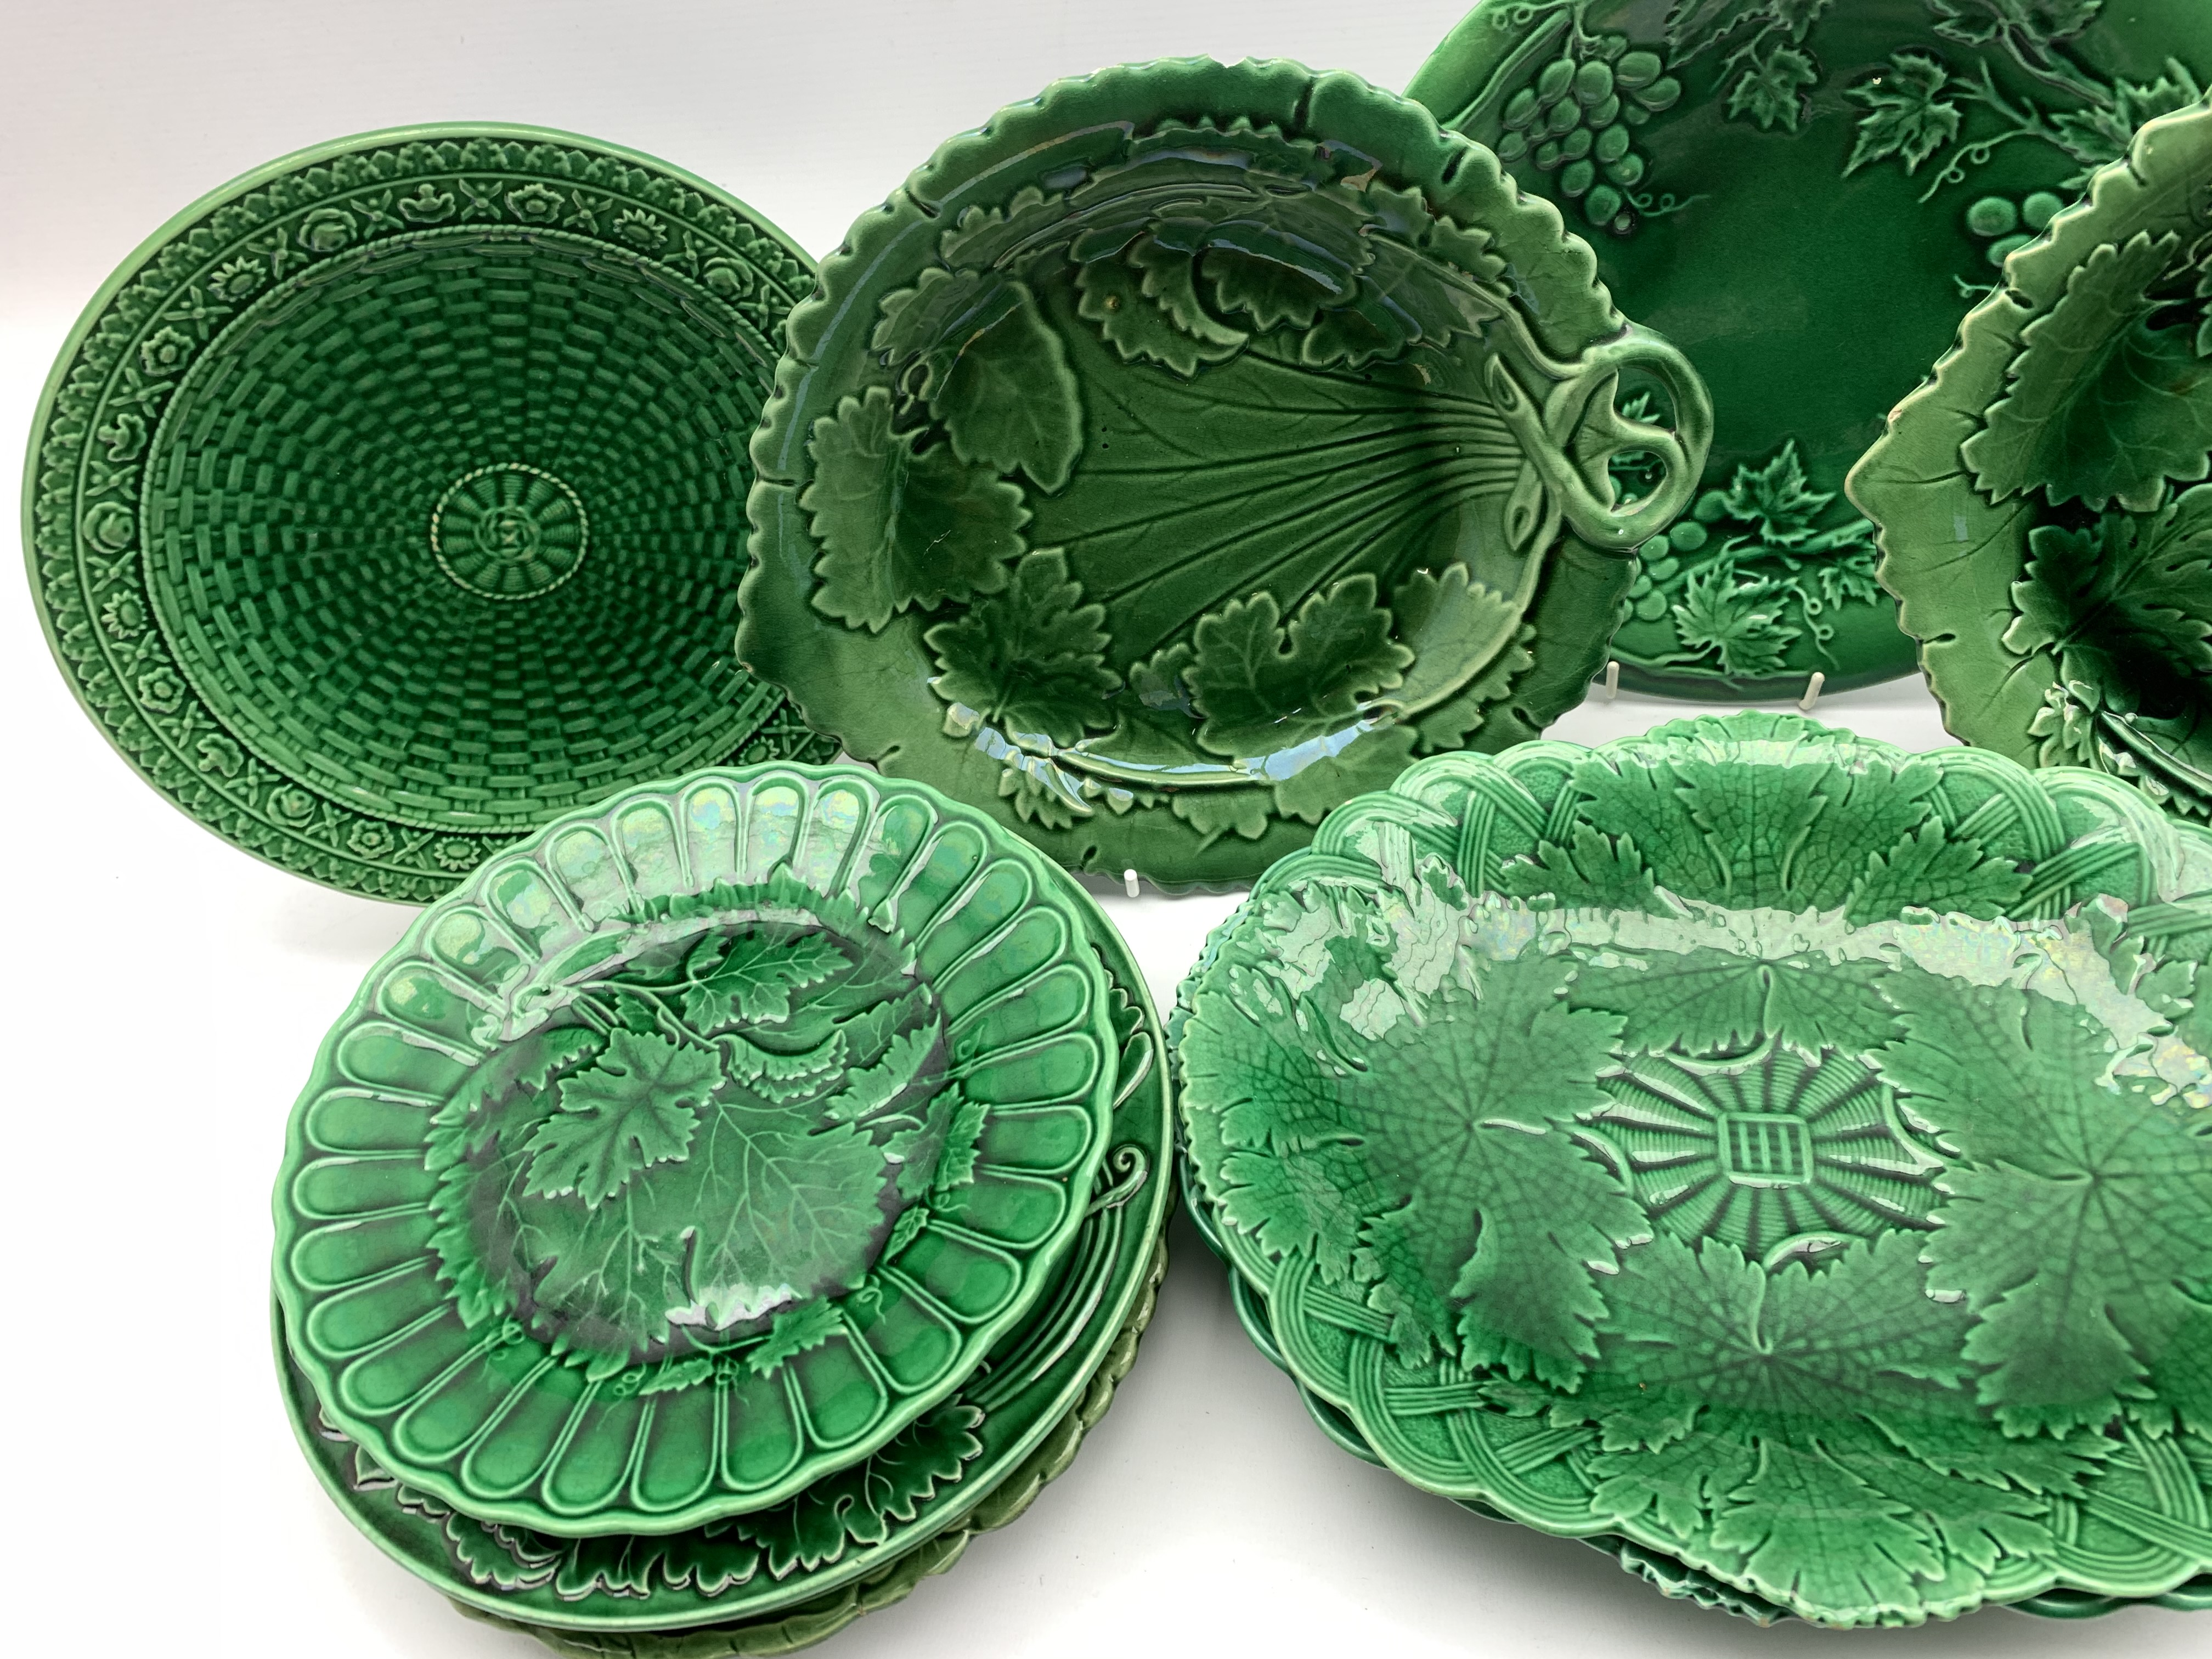 Pair of 19th century Wedgwood green glazed leaf moulded oval shallow dishes W28cm, pair of similar p - Image 5 of 5